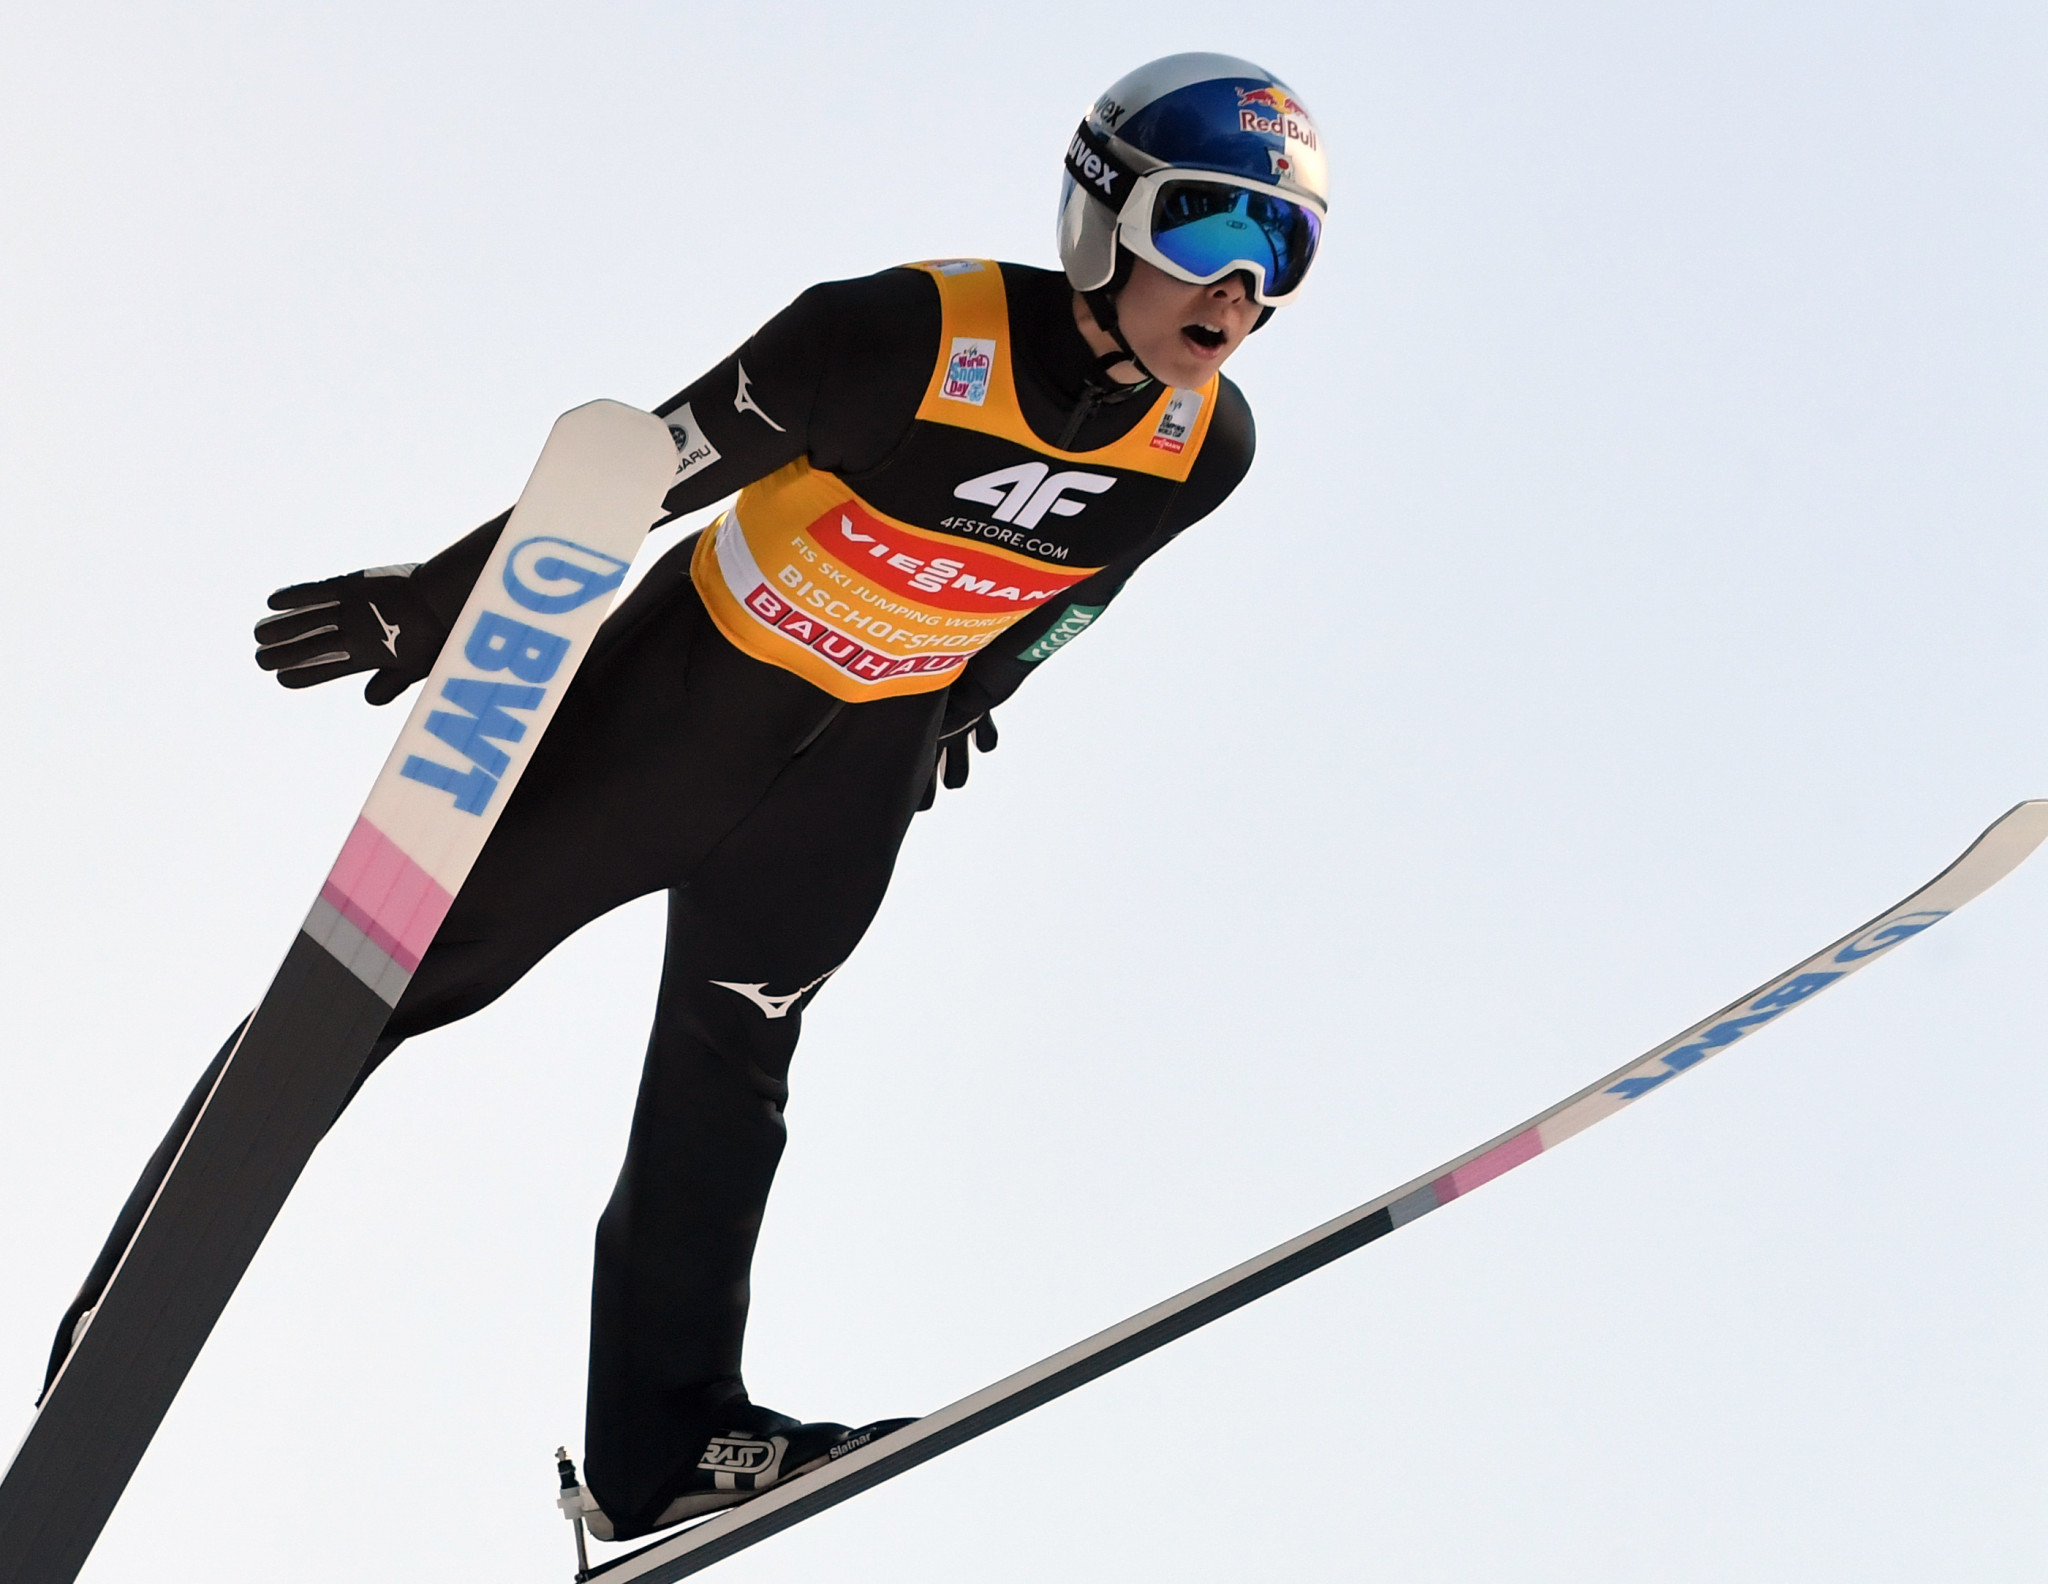 Val di Fiemme braced to host FIS Ski Jumping World Cup